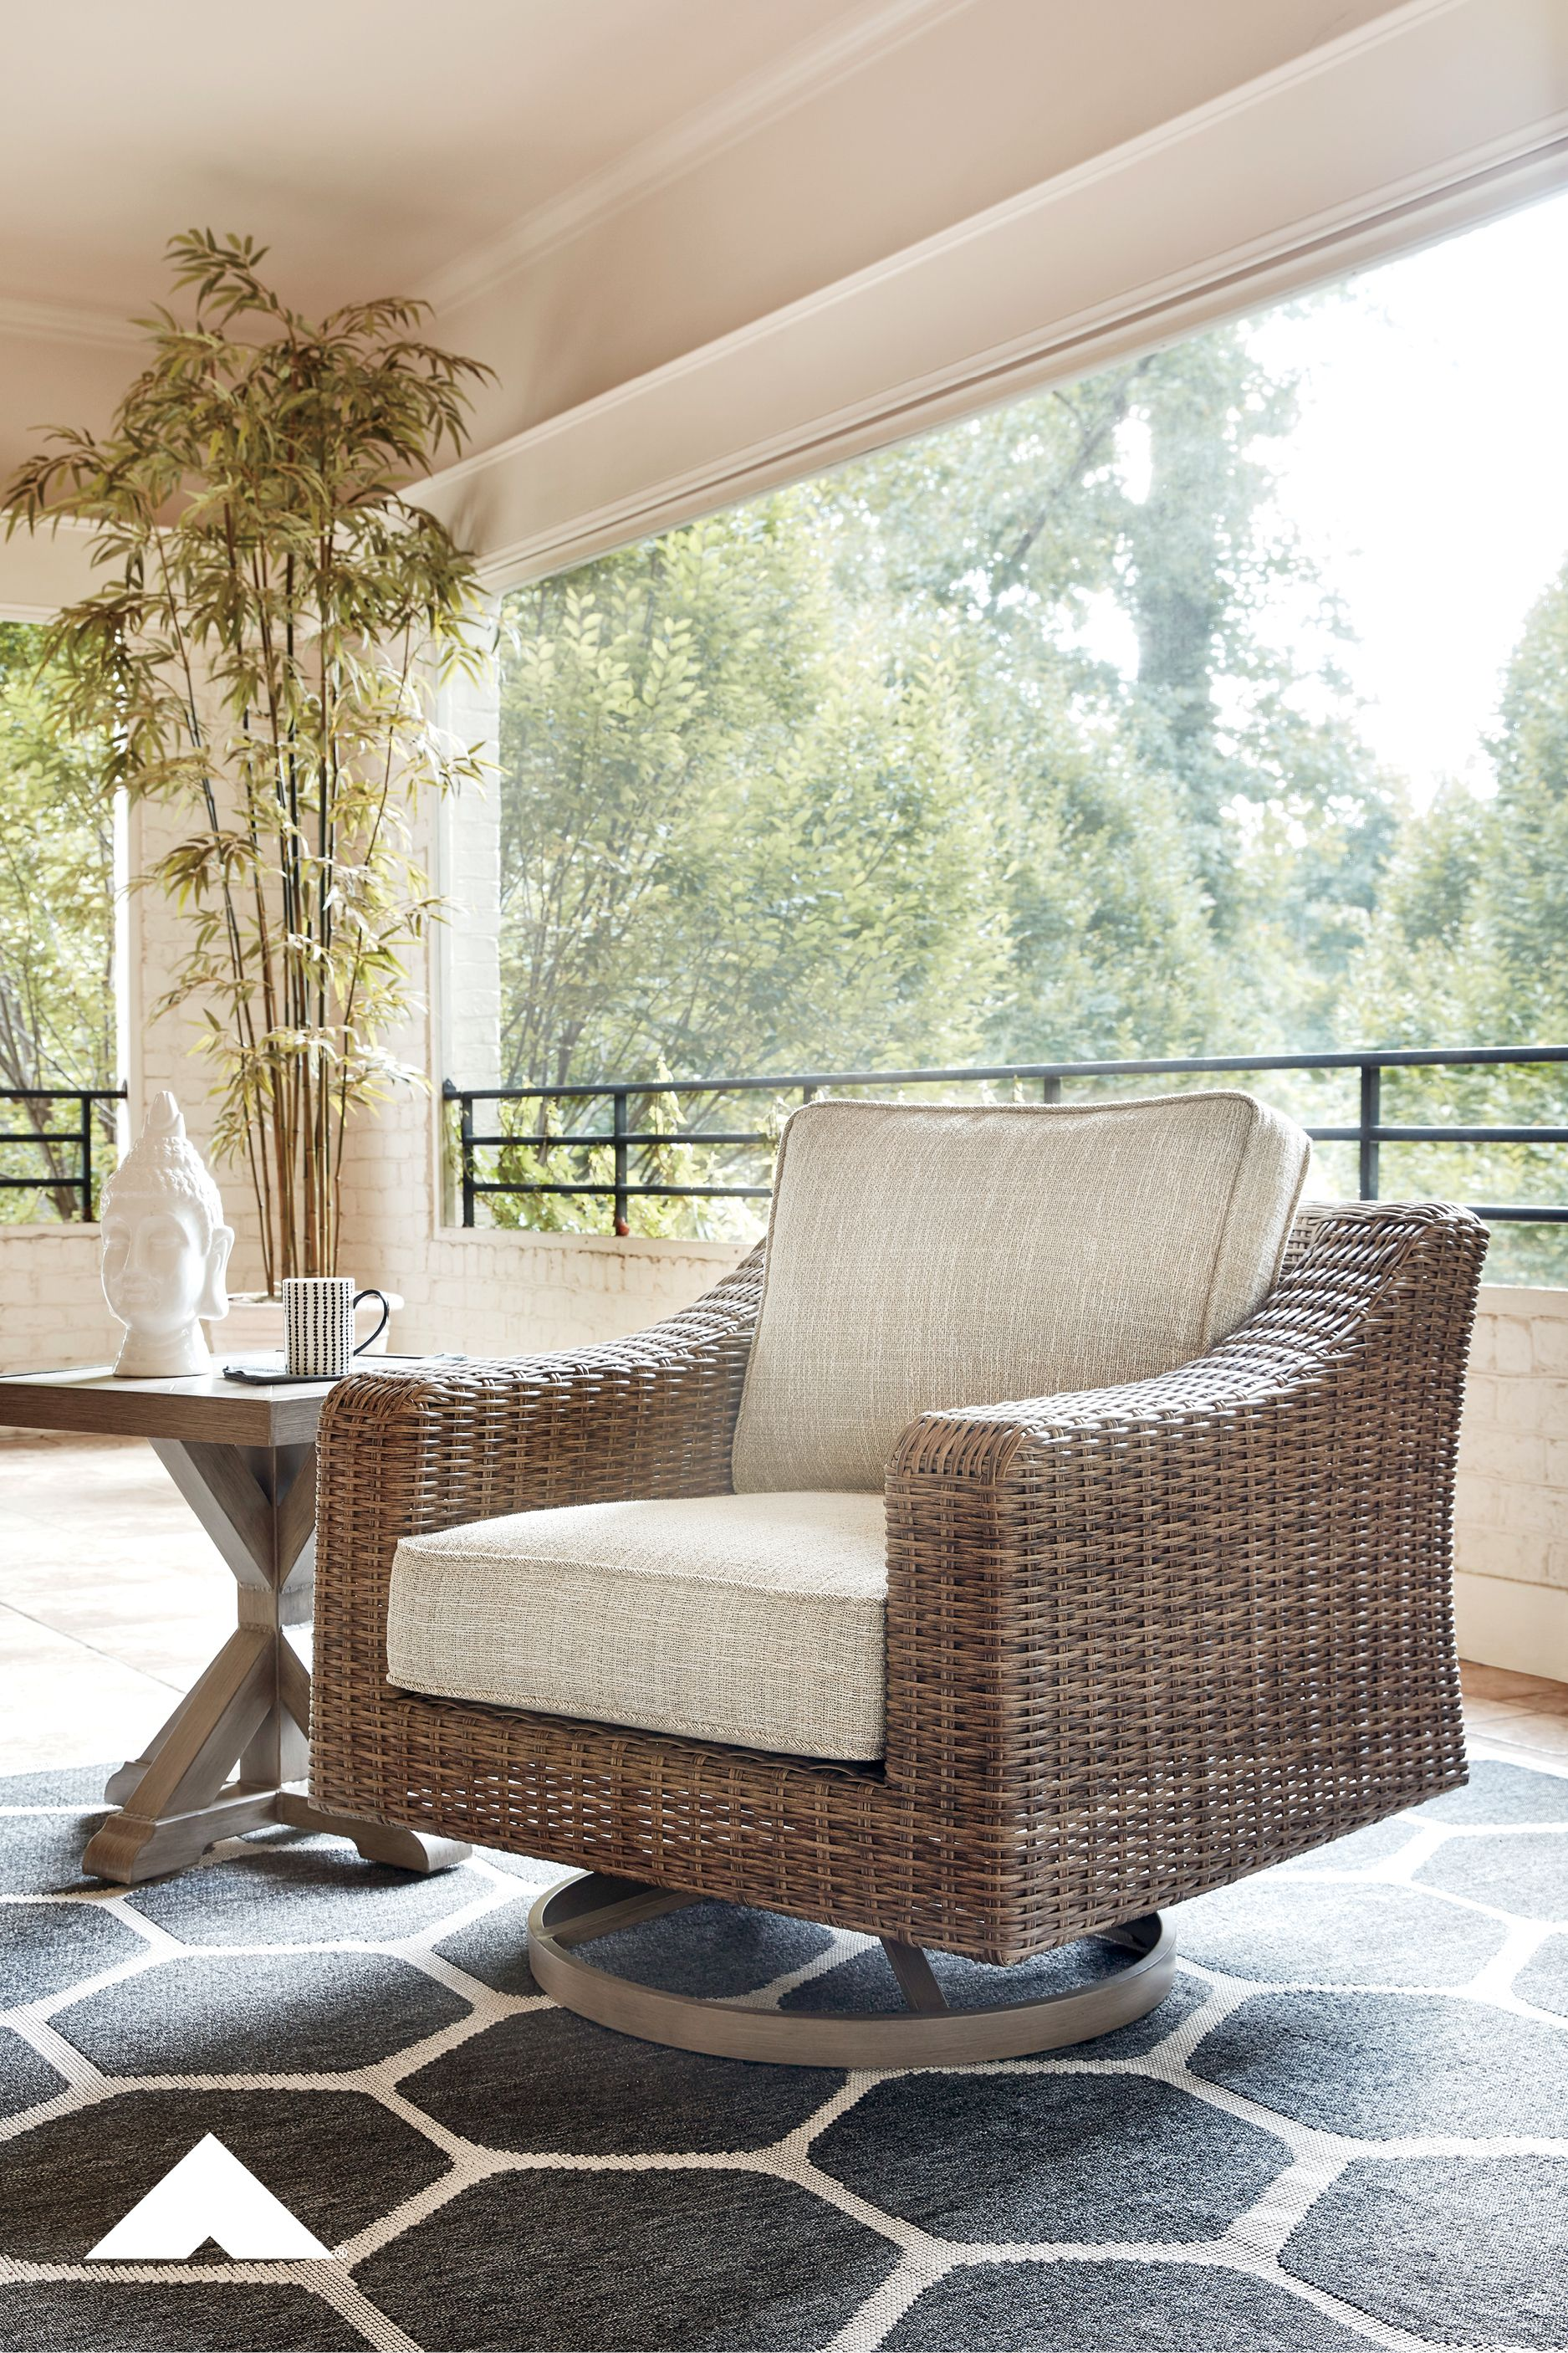 Beachcroft Swivel Chair by Ashley Furniture | Sporting an ... on Beachcroft Beige Outdoor Living Room Set  id=40765